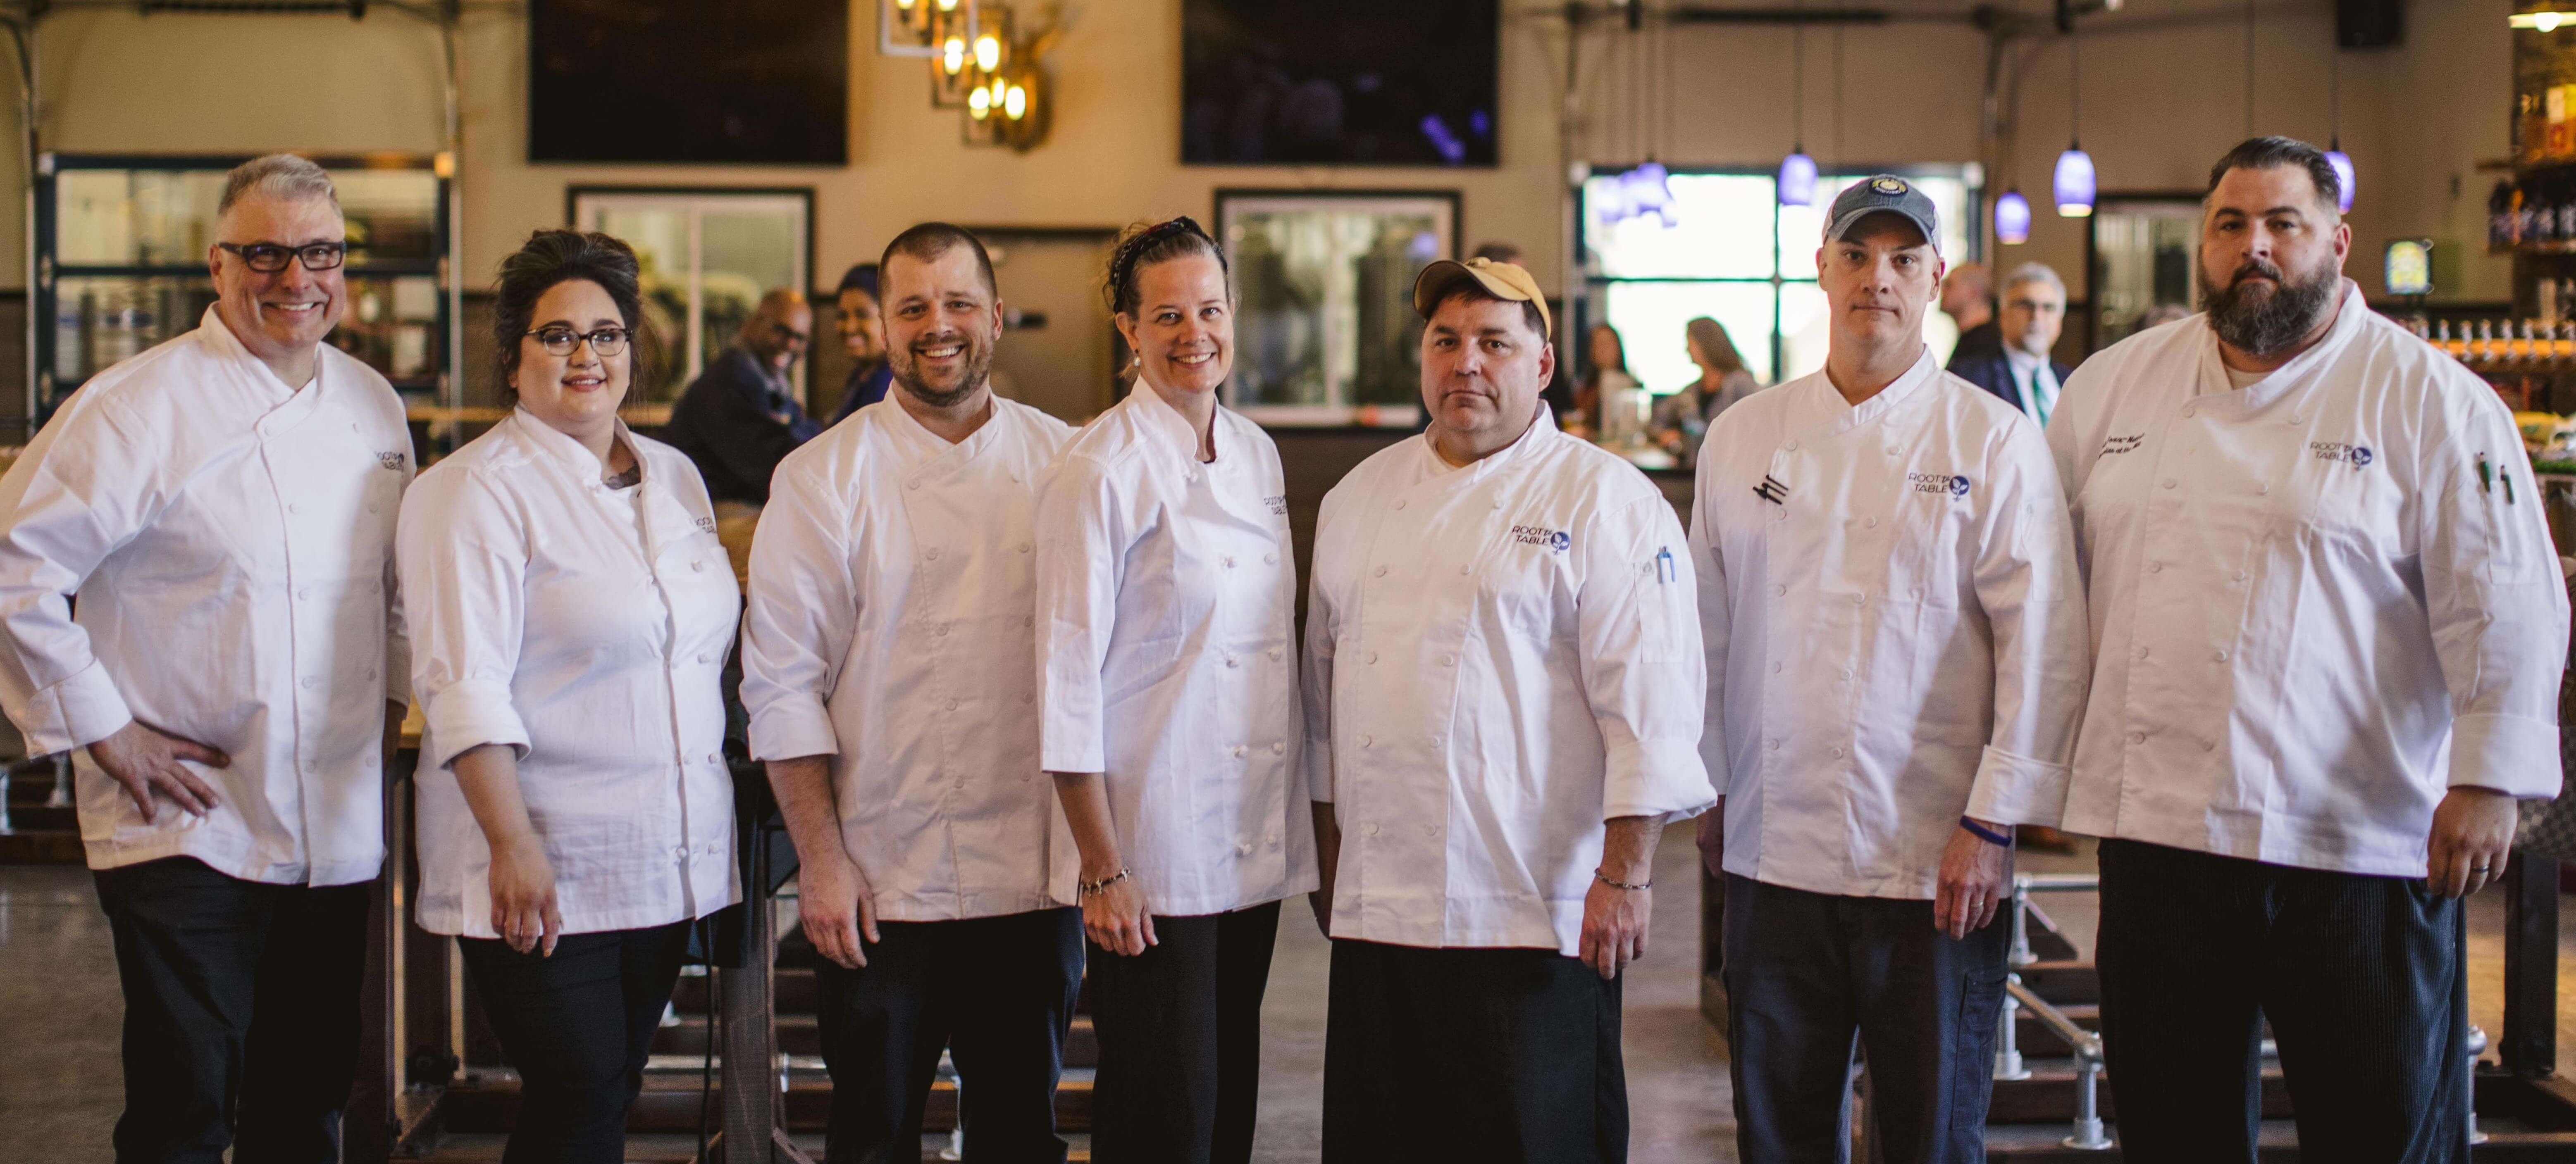 Taste of Blue Ridge Top Chefs at BRRT Launch Party